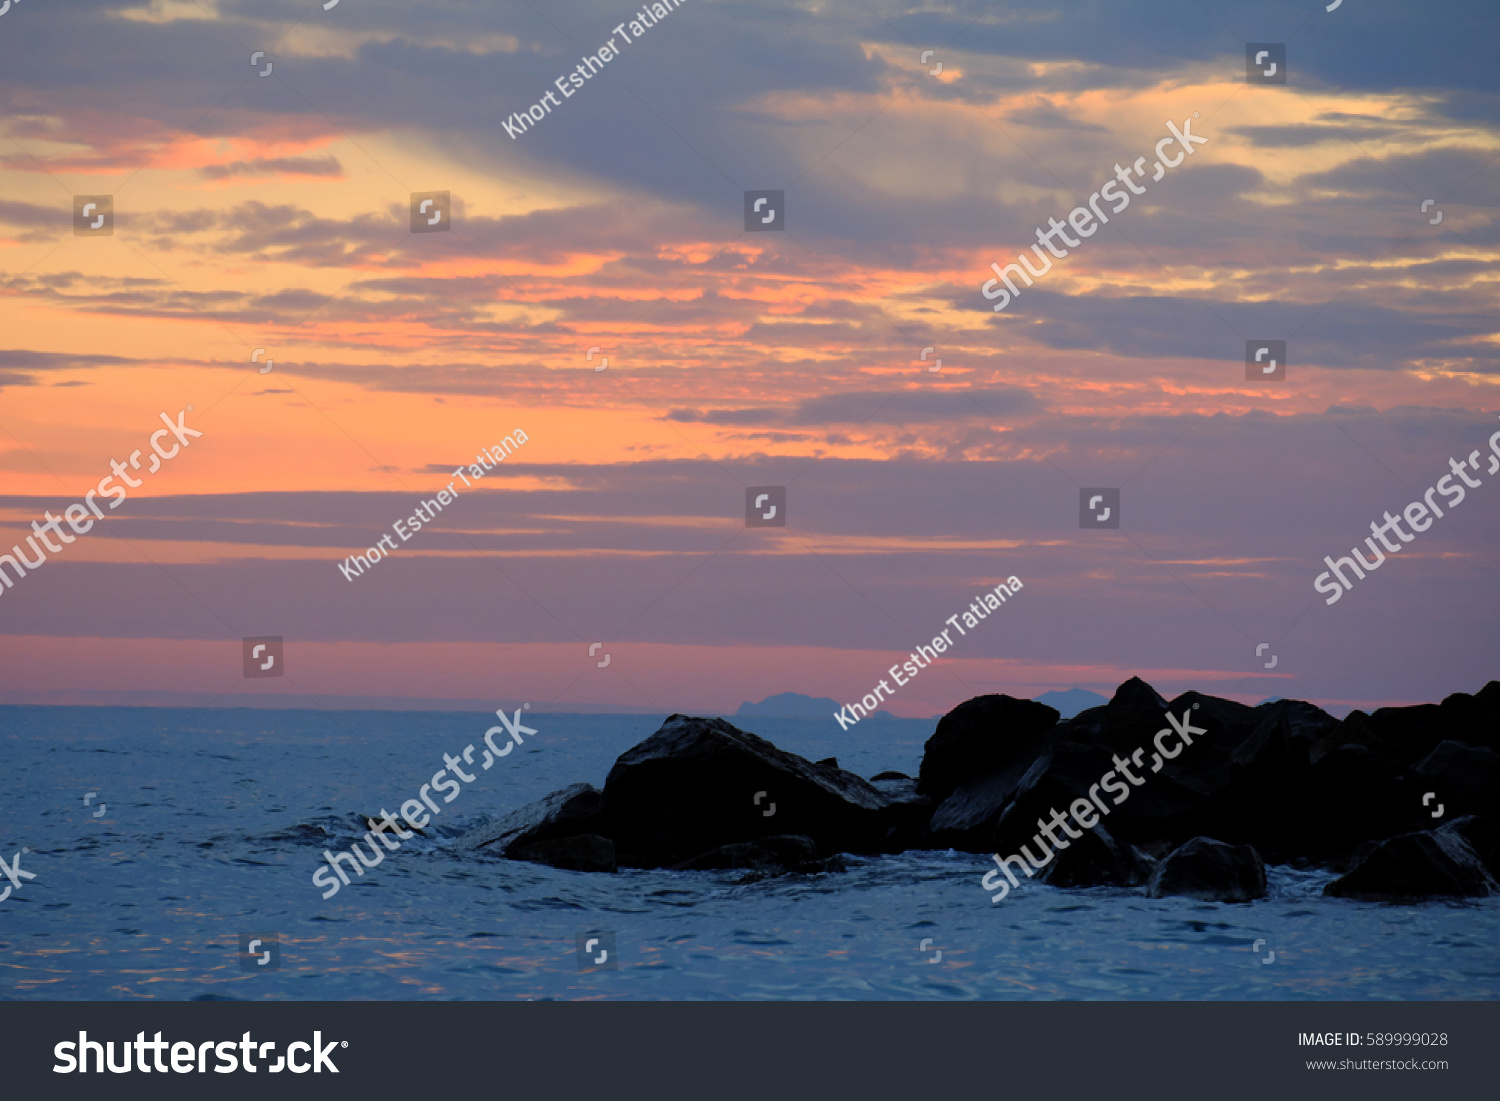 Sunset Sea Pastel Colors Serene Landscape Stock Photo ...